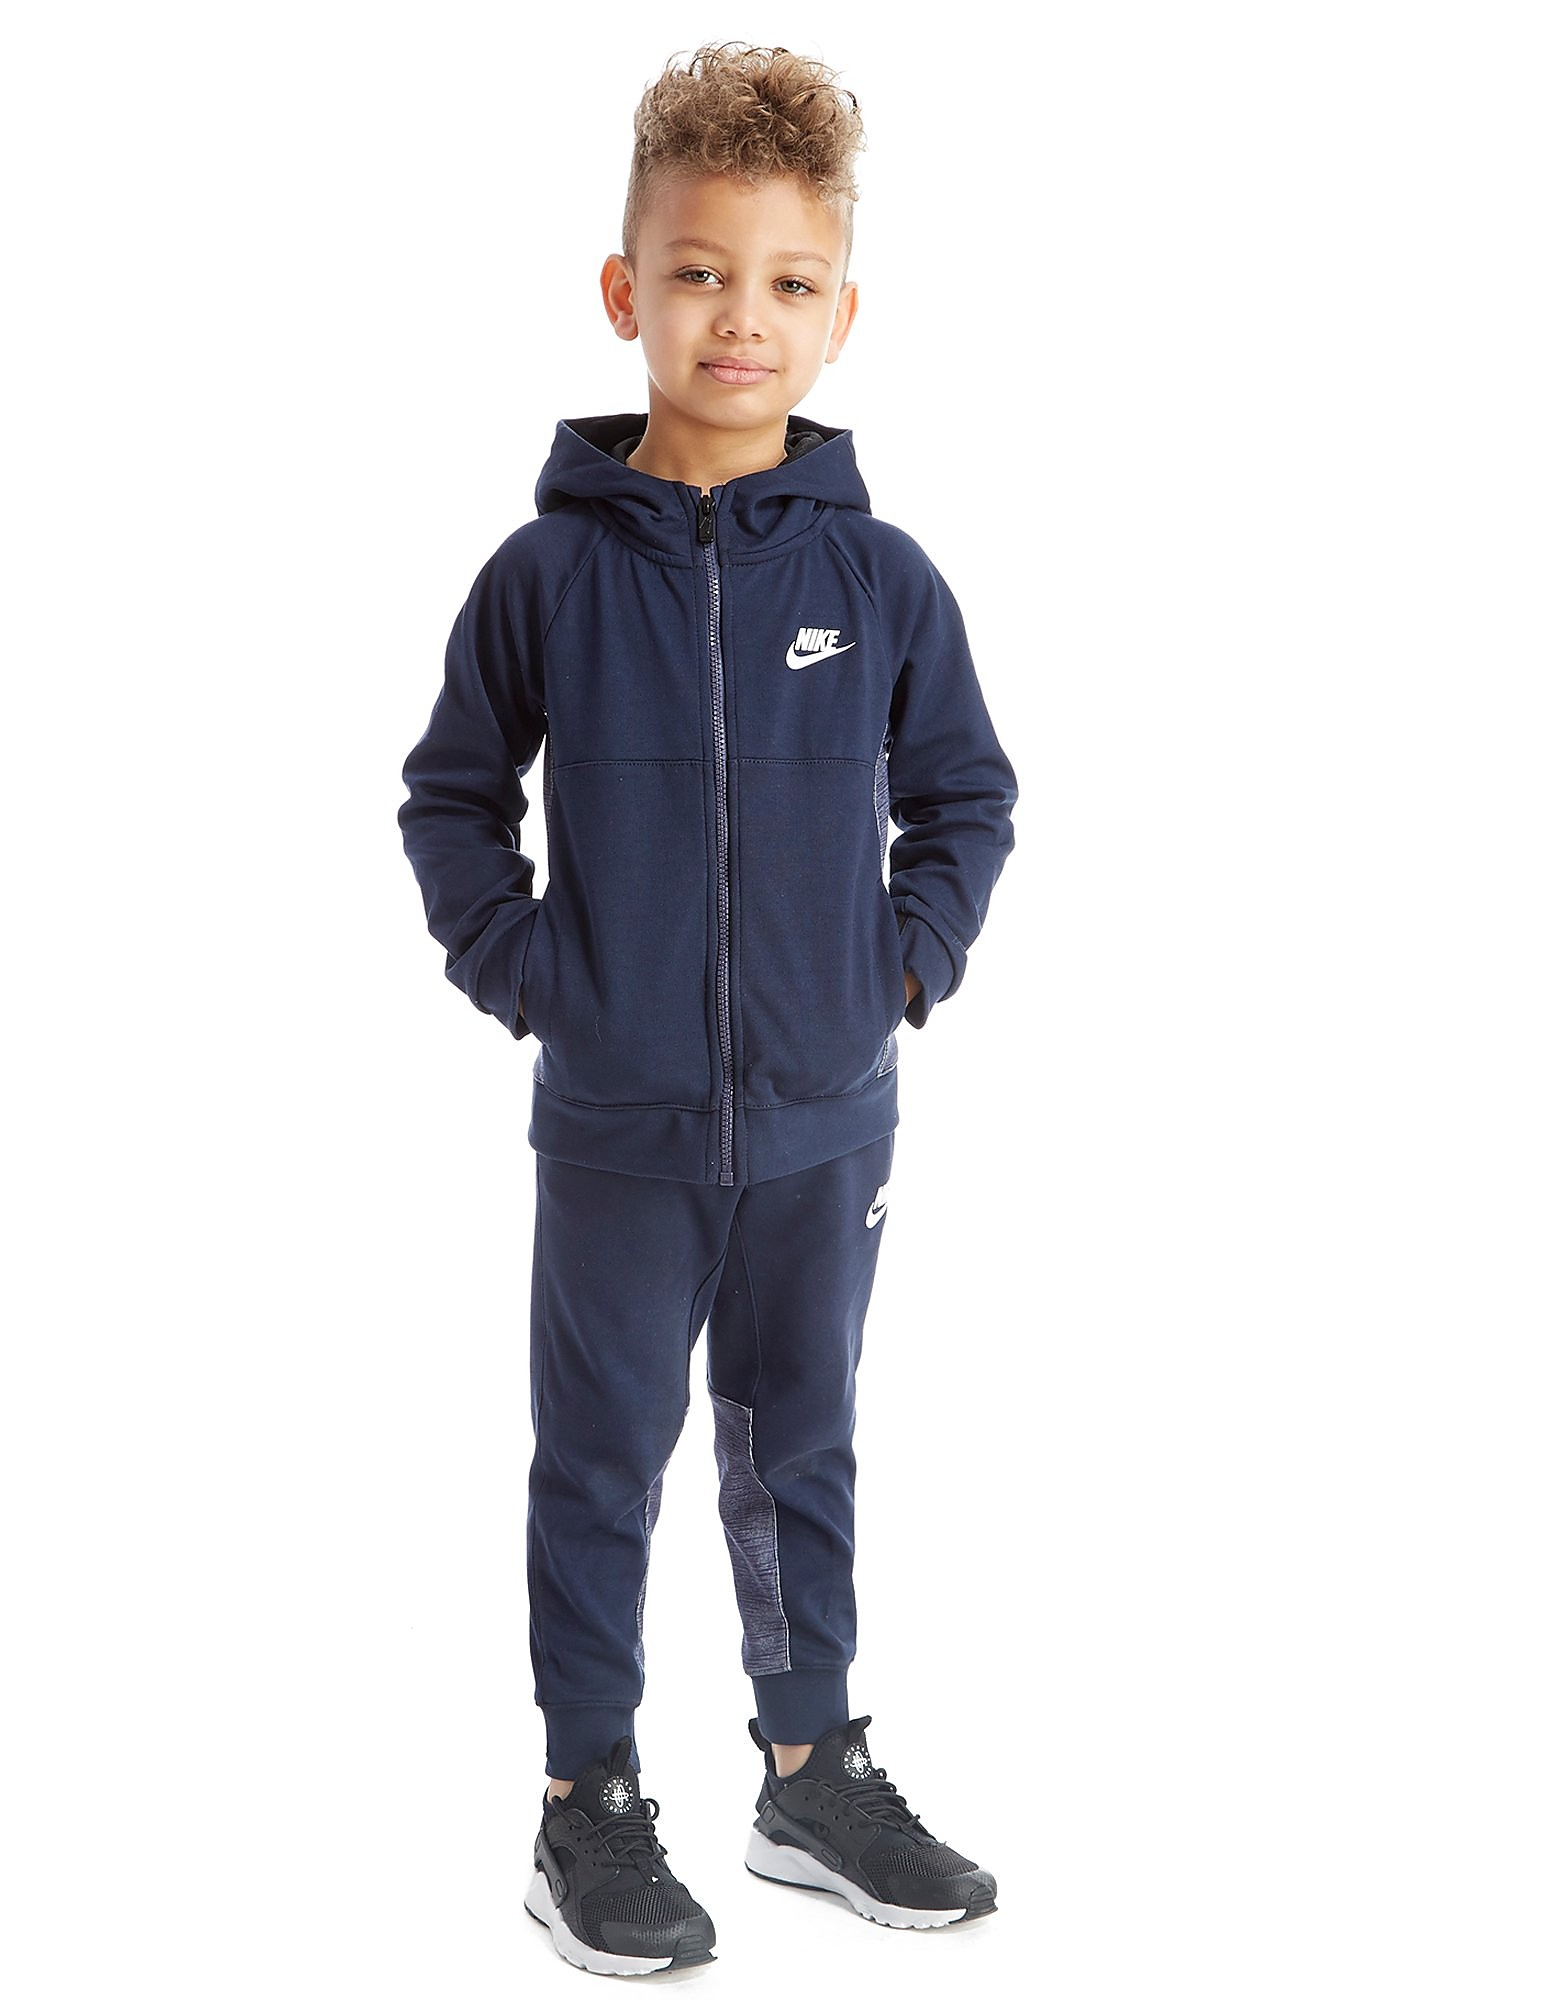 Nike Advanced Full Zip Tuta Sportiva Bambino